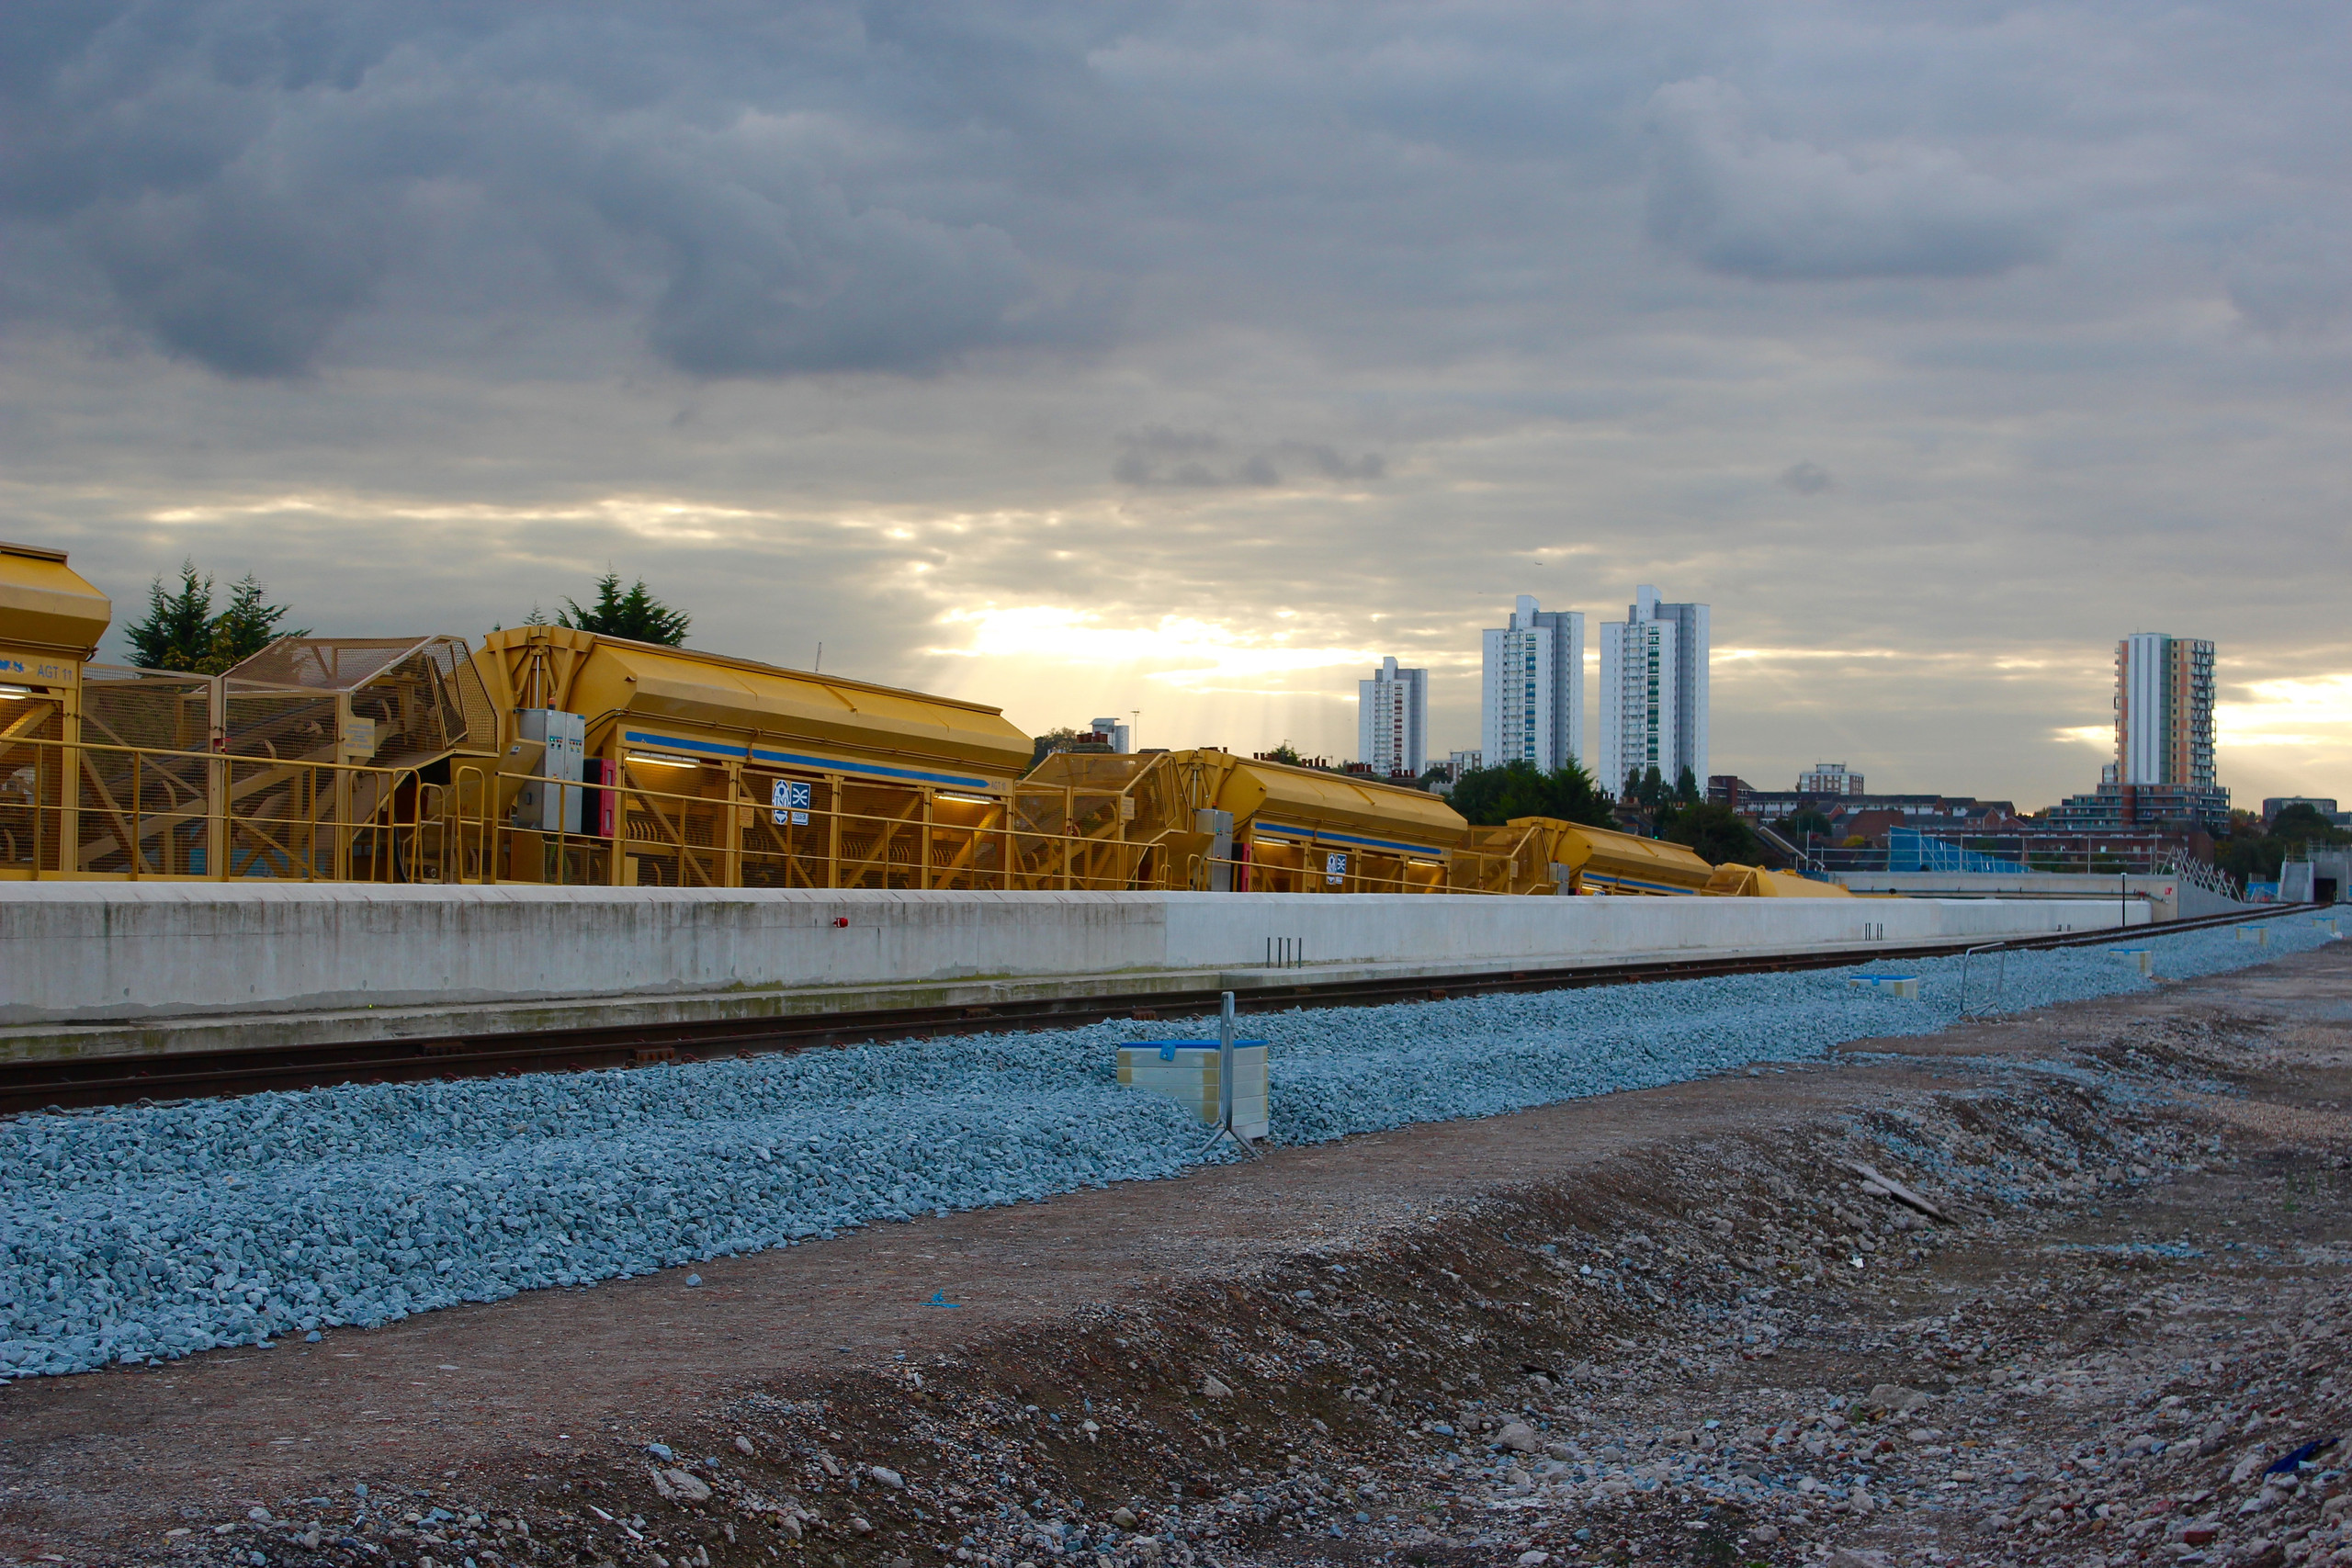 Concreting train begins first journey on Crossrail_210328